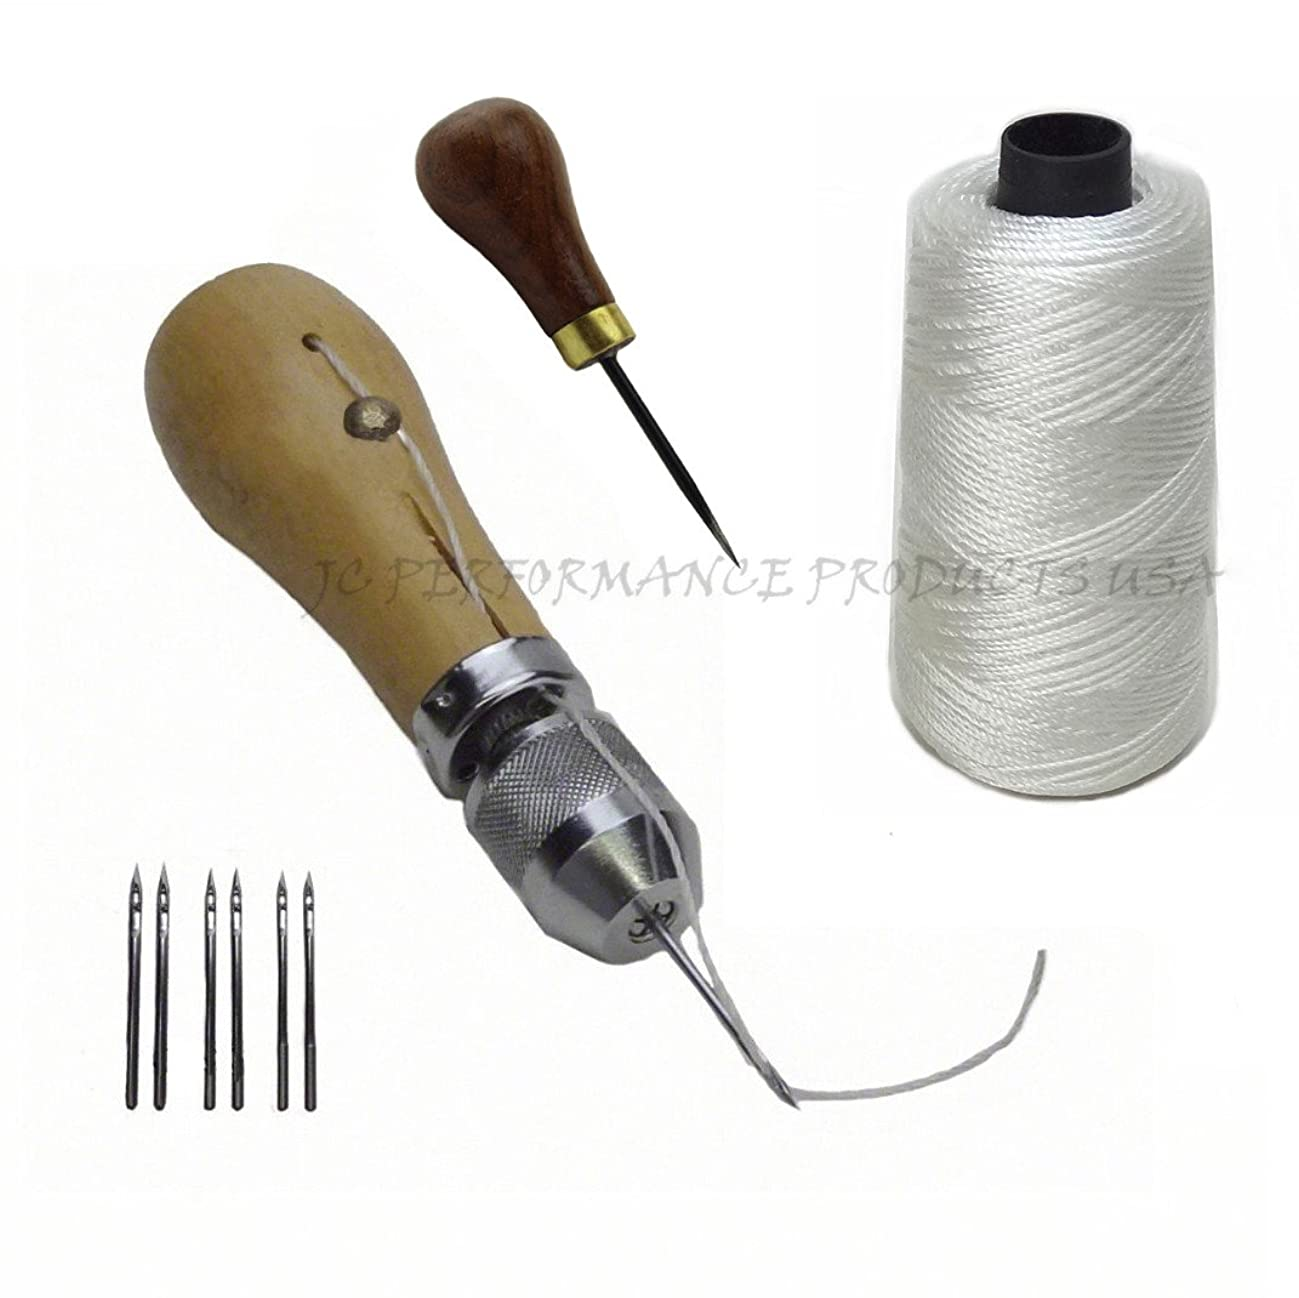 JC Performance Leather Sewing Awl Quick Stitch Repair Tool Set Heavy Duty Thread (With Awl, White)